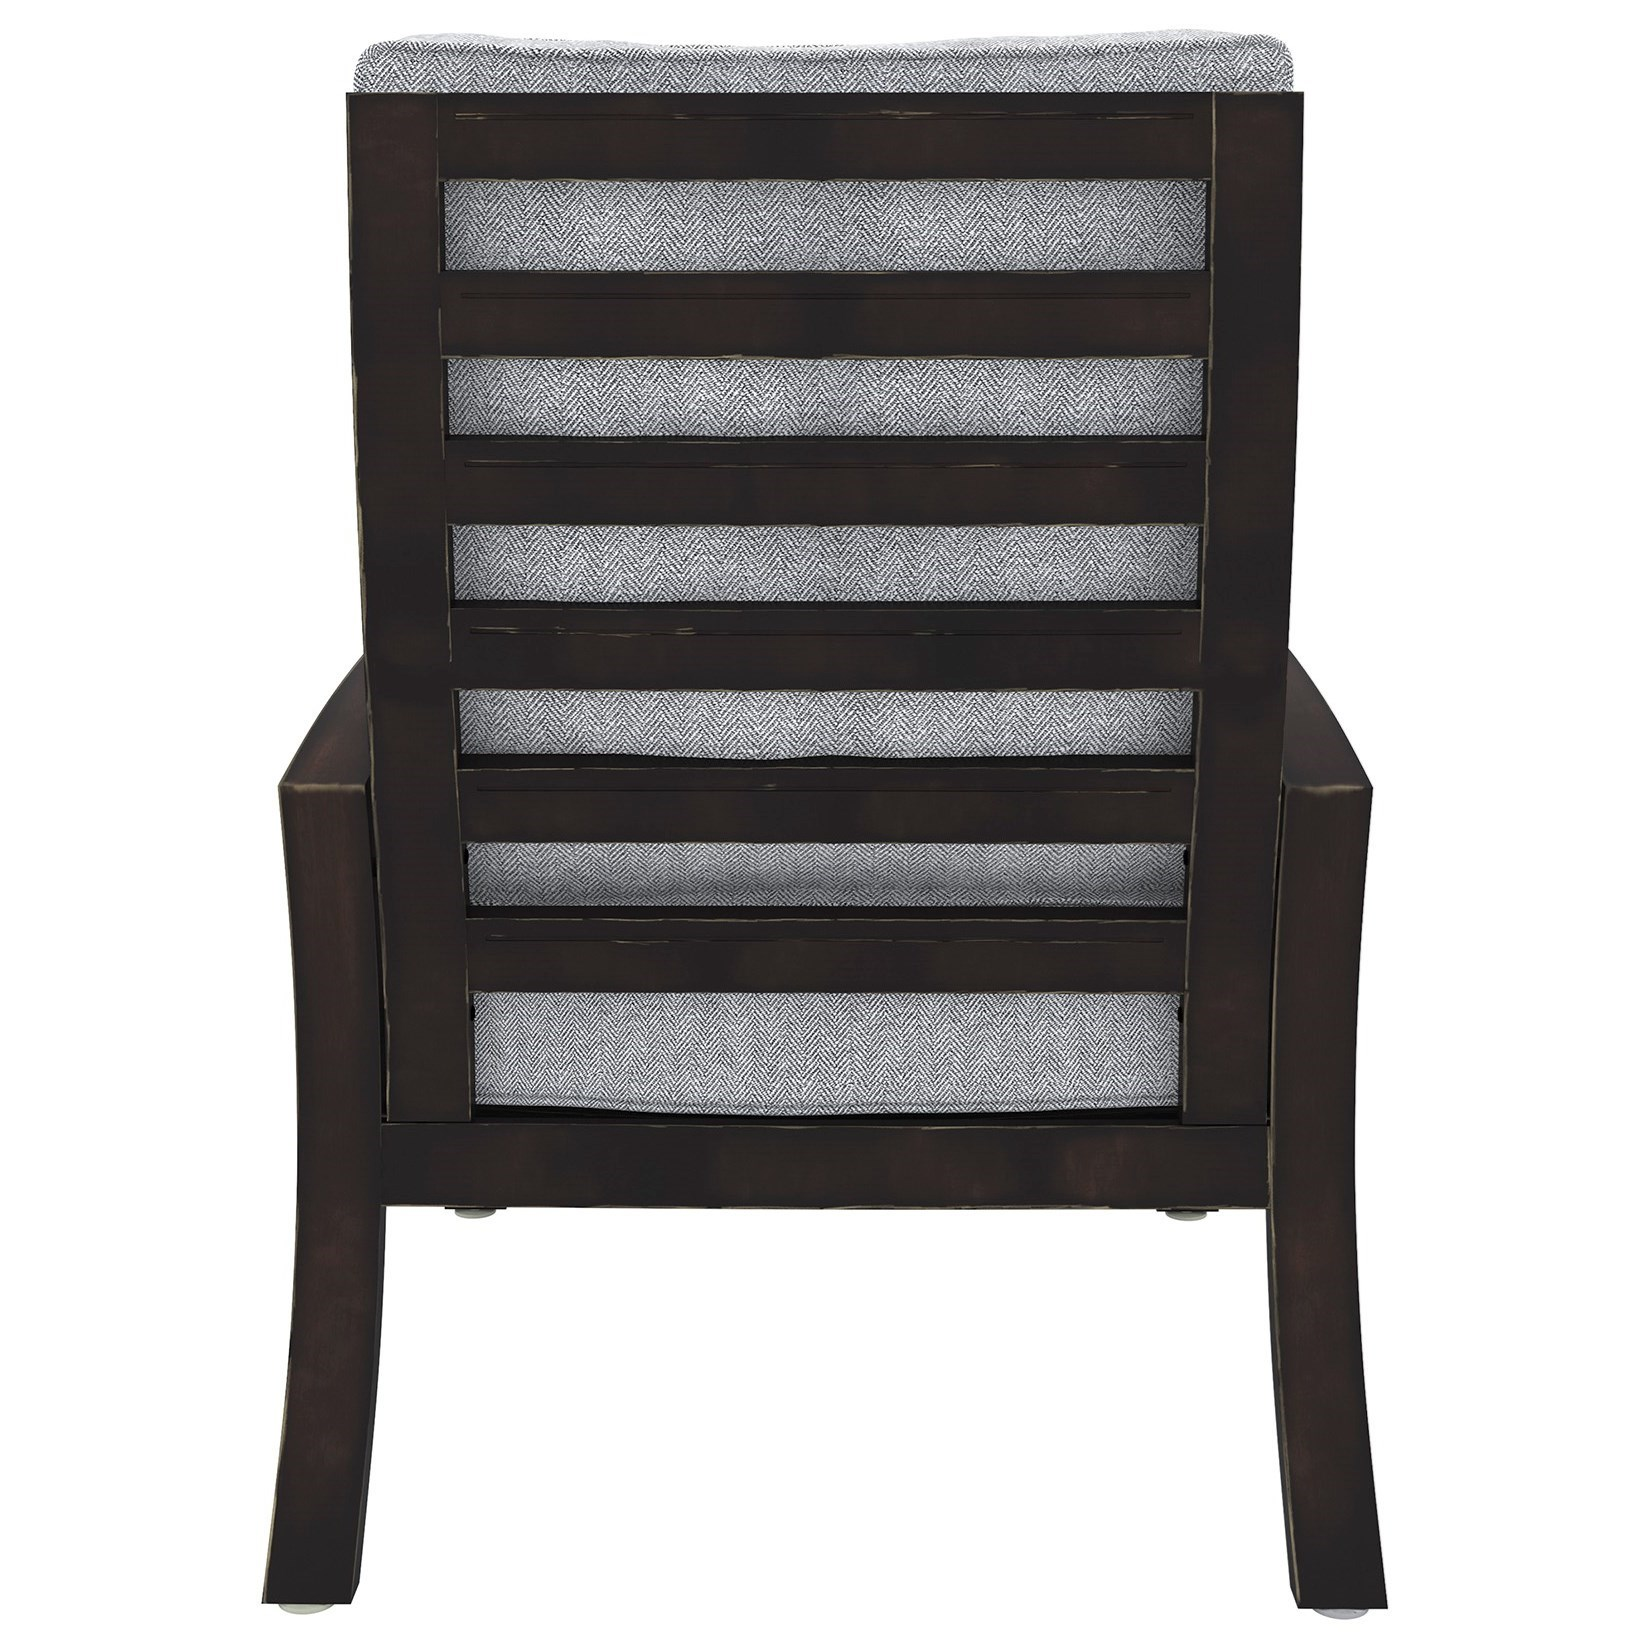 Signature Design By Ashley Castle Island P414 820 Lounge Chair With Cushion Pilgrim Furniture